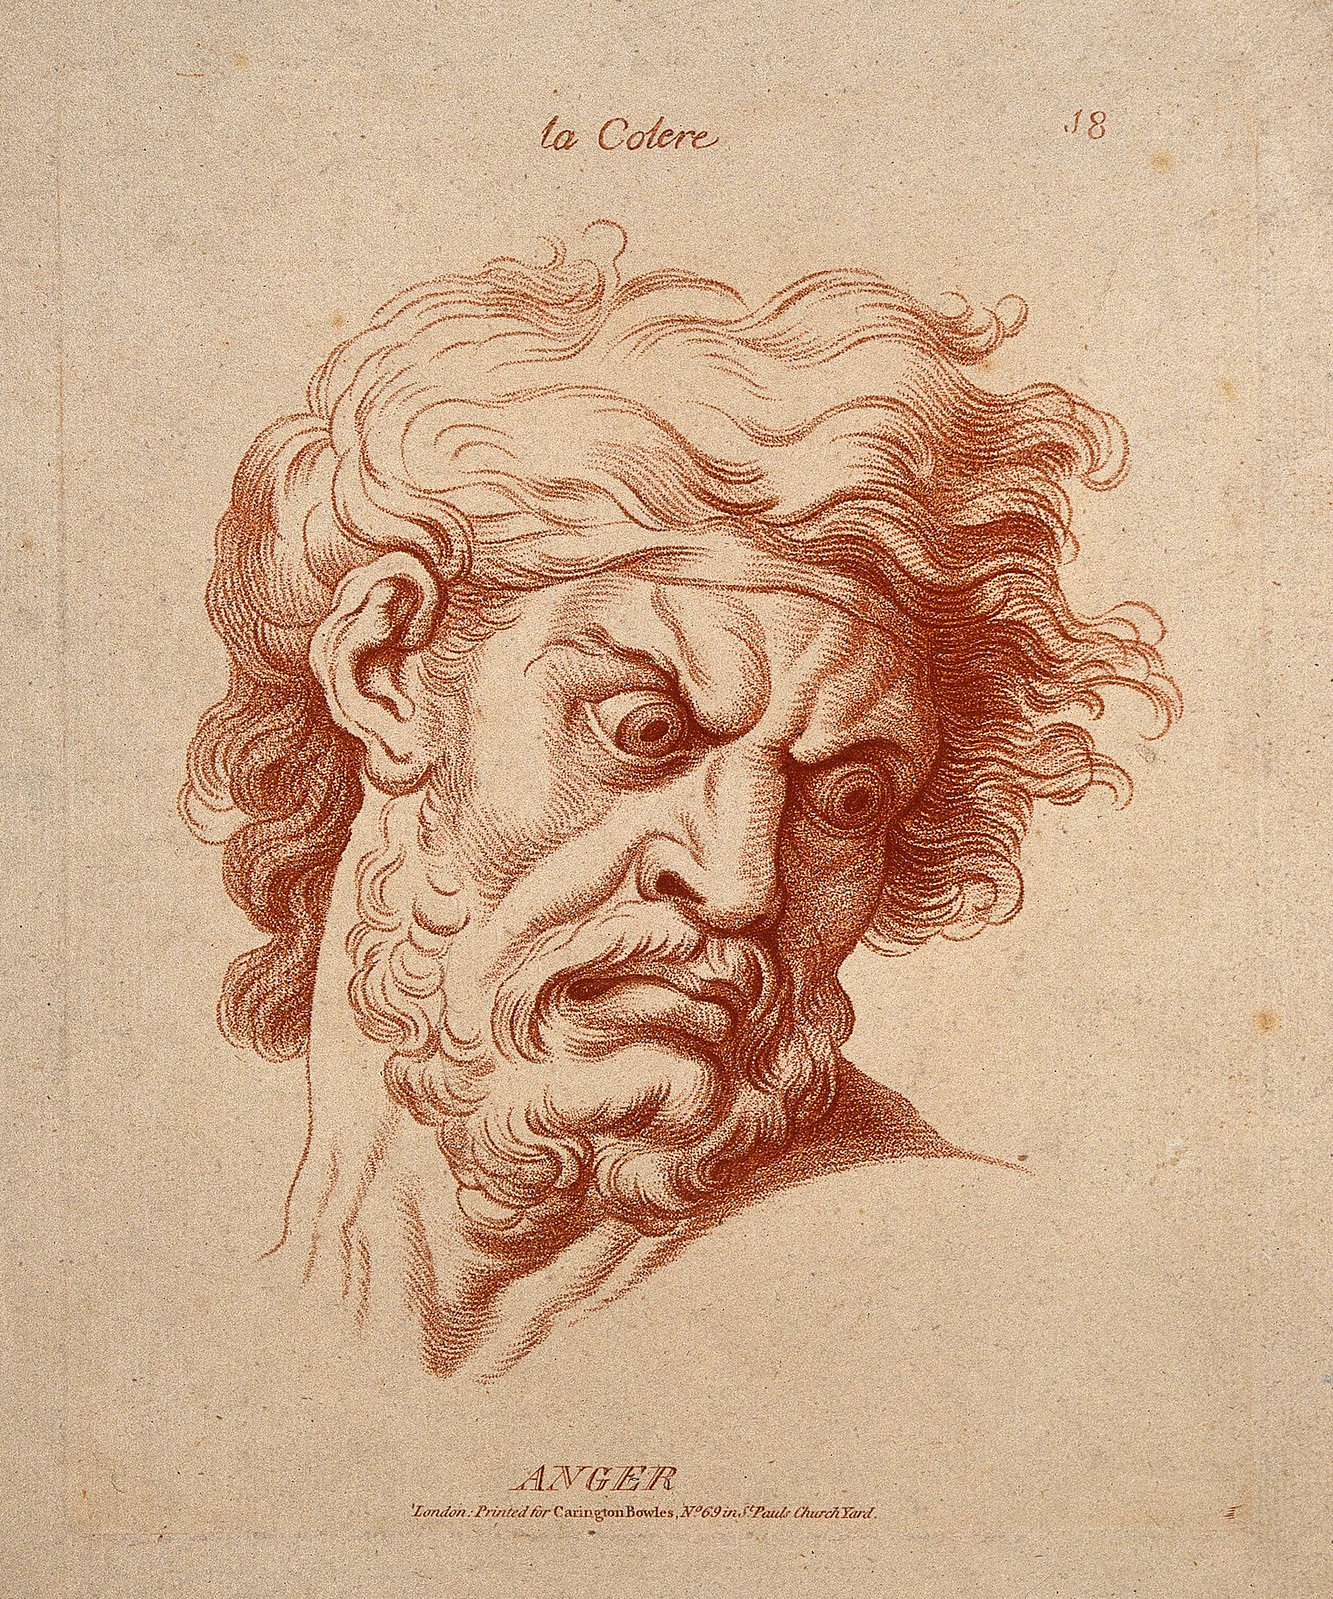 The face of a bearded man expressing anger. Etching in the crayon manner by W. Hebert, c. 1770, after C. Le Brun. Credit Wellcome Images